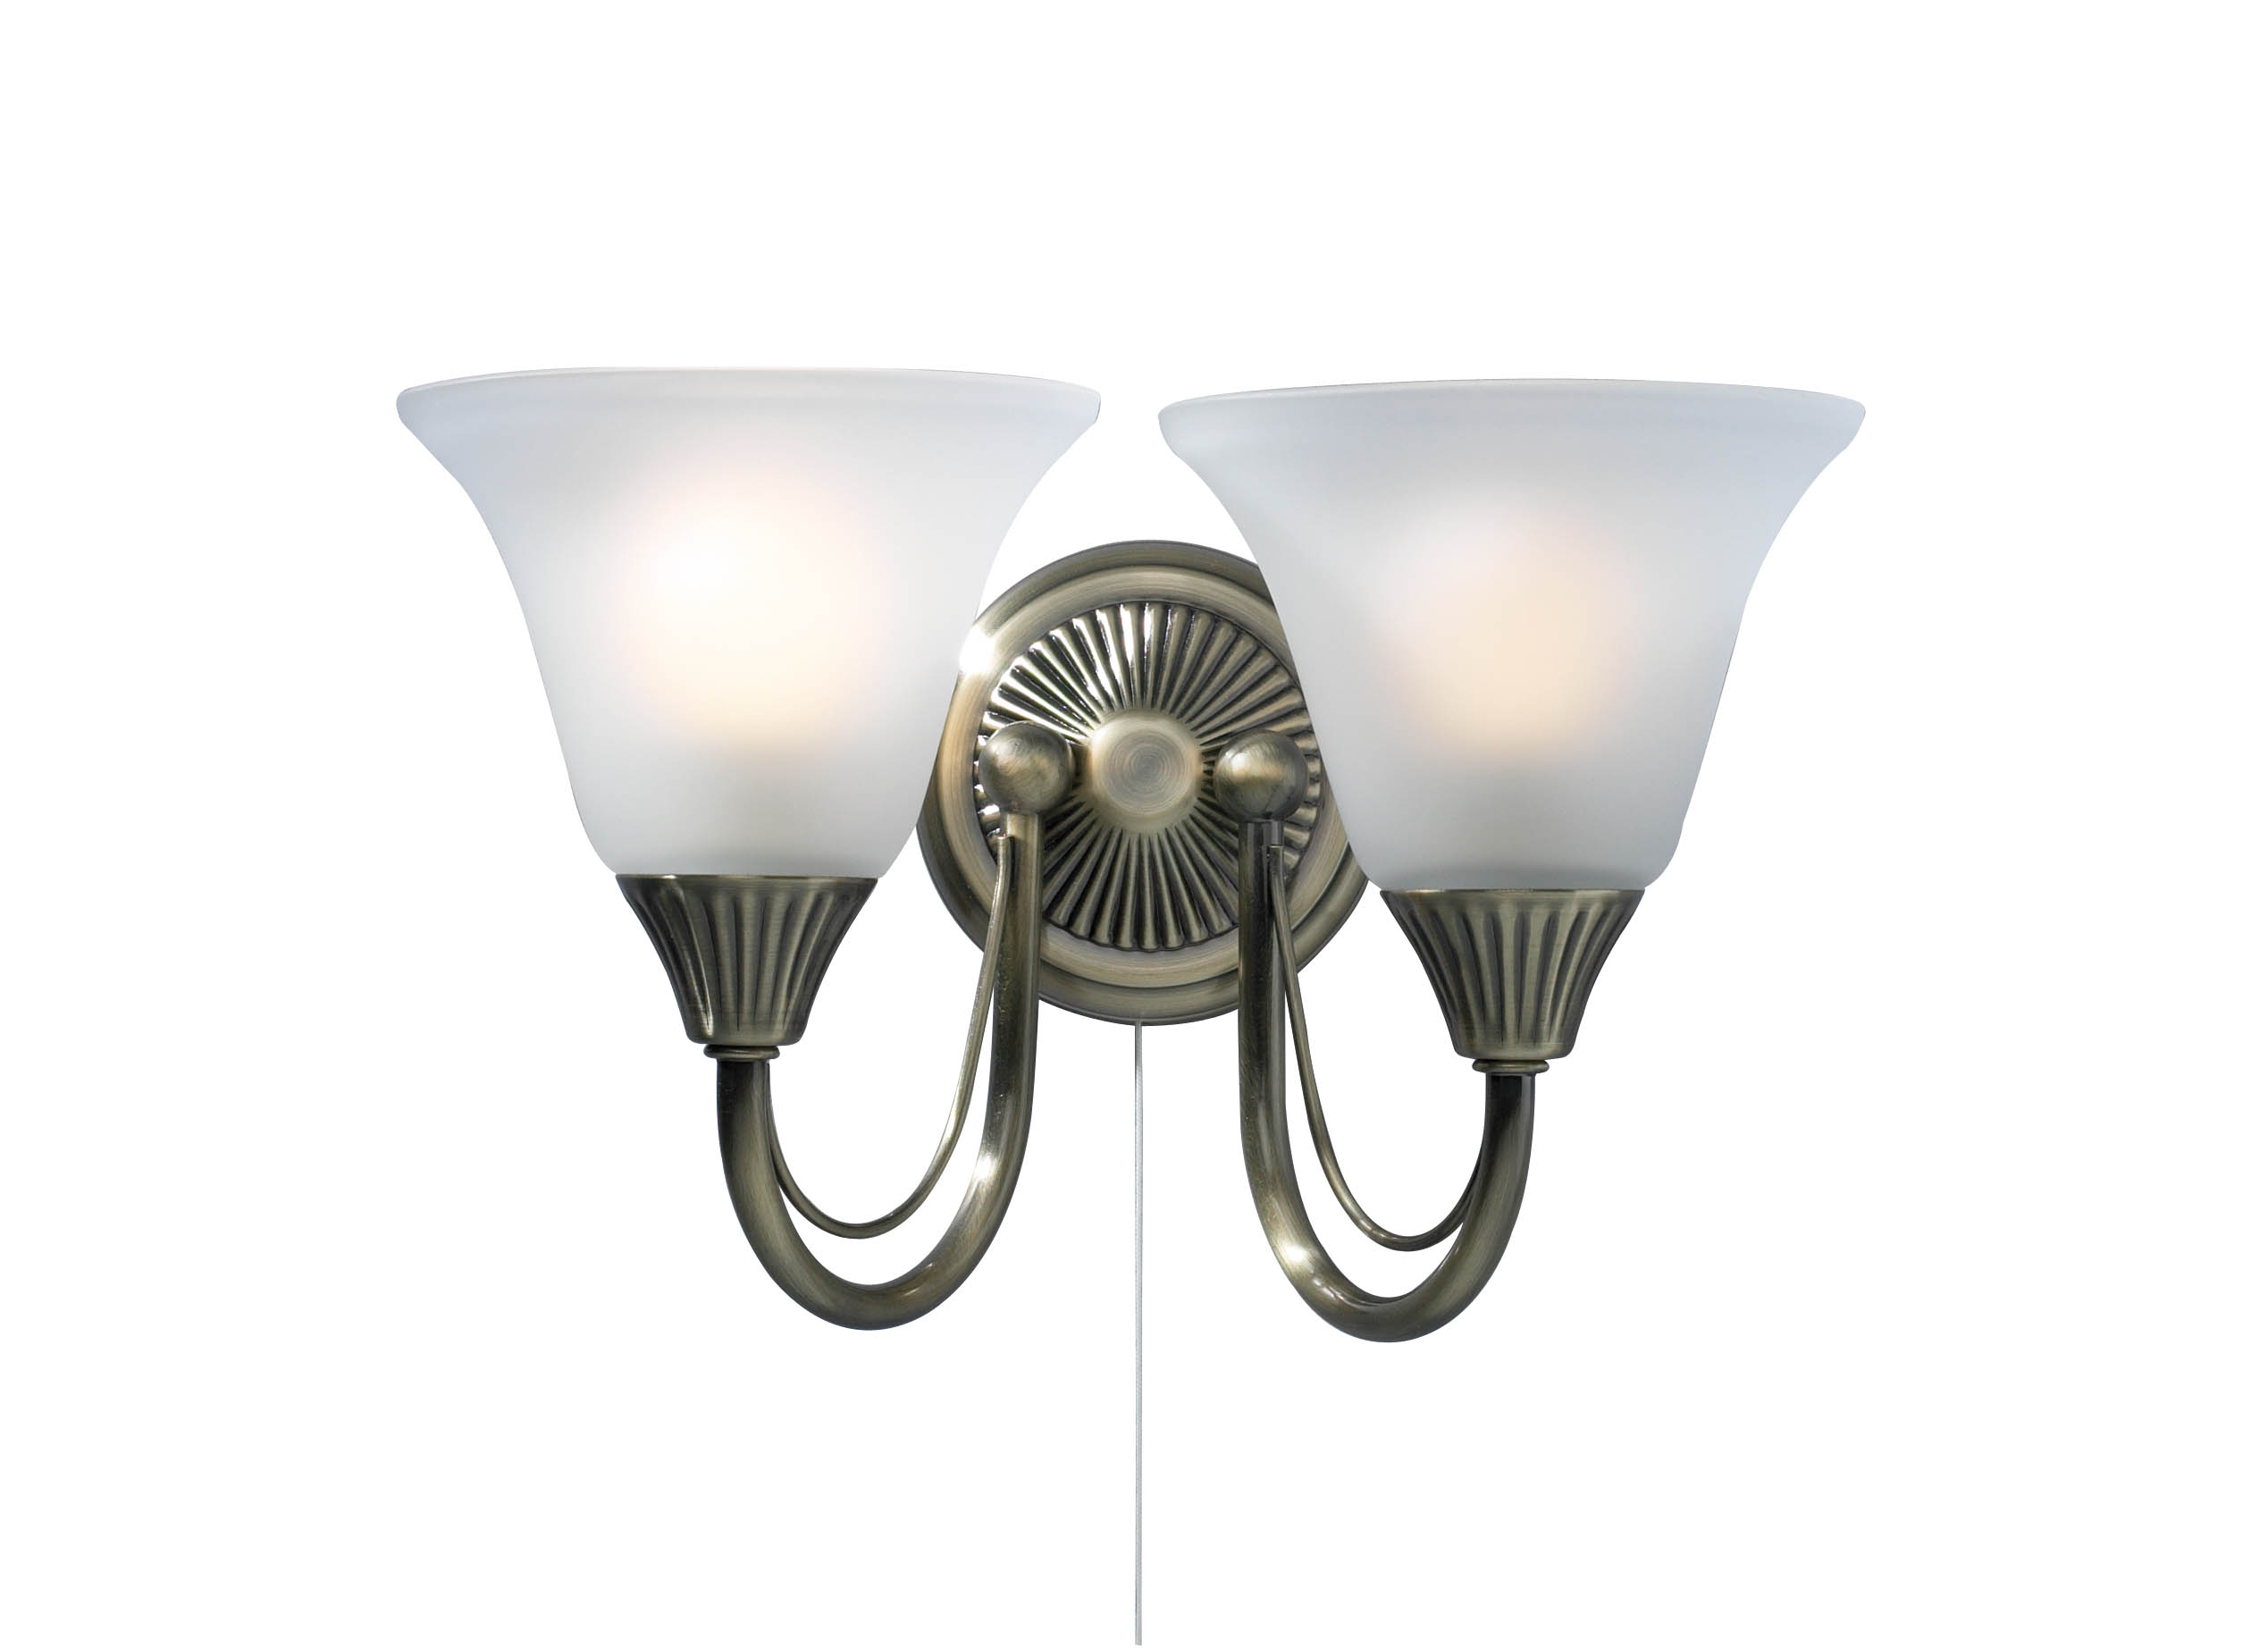 collection cherub victorian antique sconce chairish putti a andrea sadek by used pair lights lamps glass minneapolis lighting vintage blown